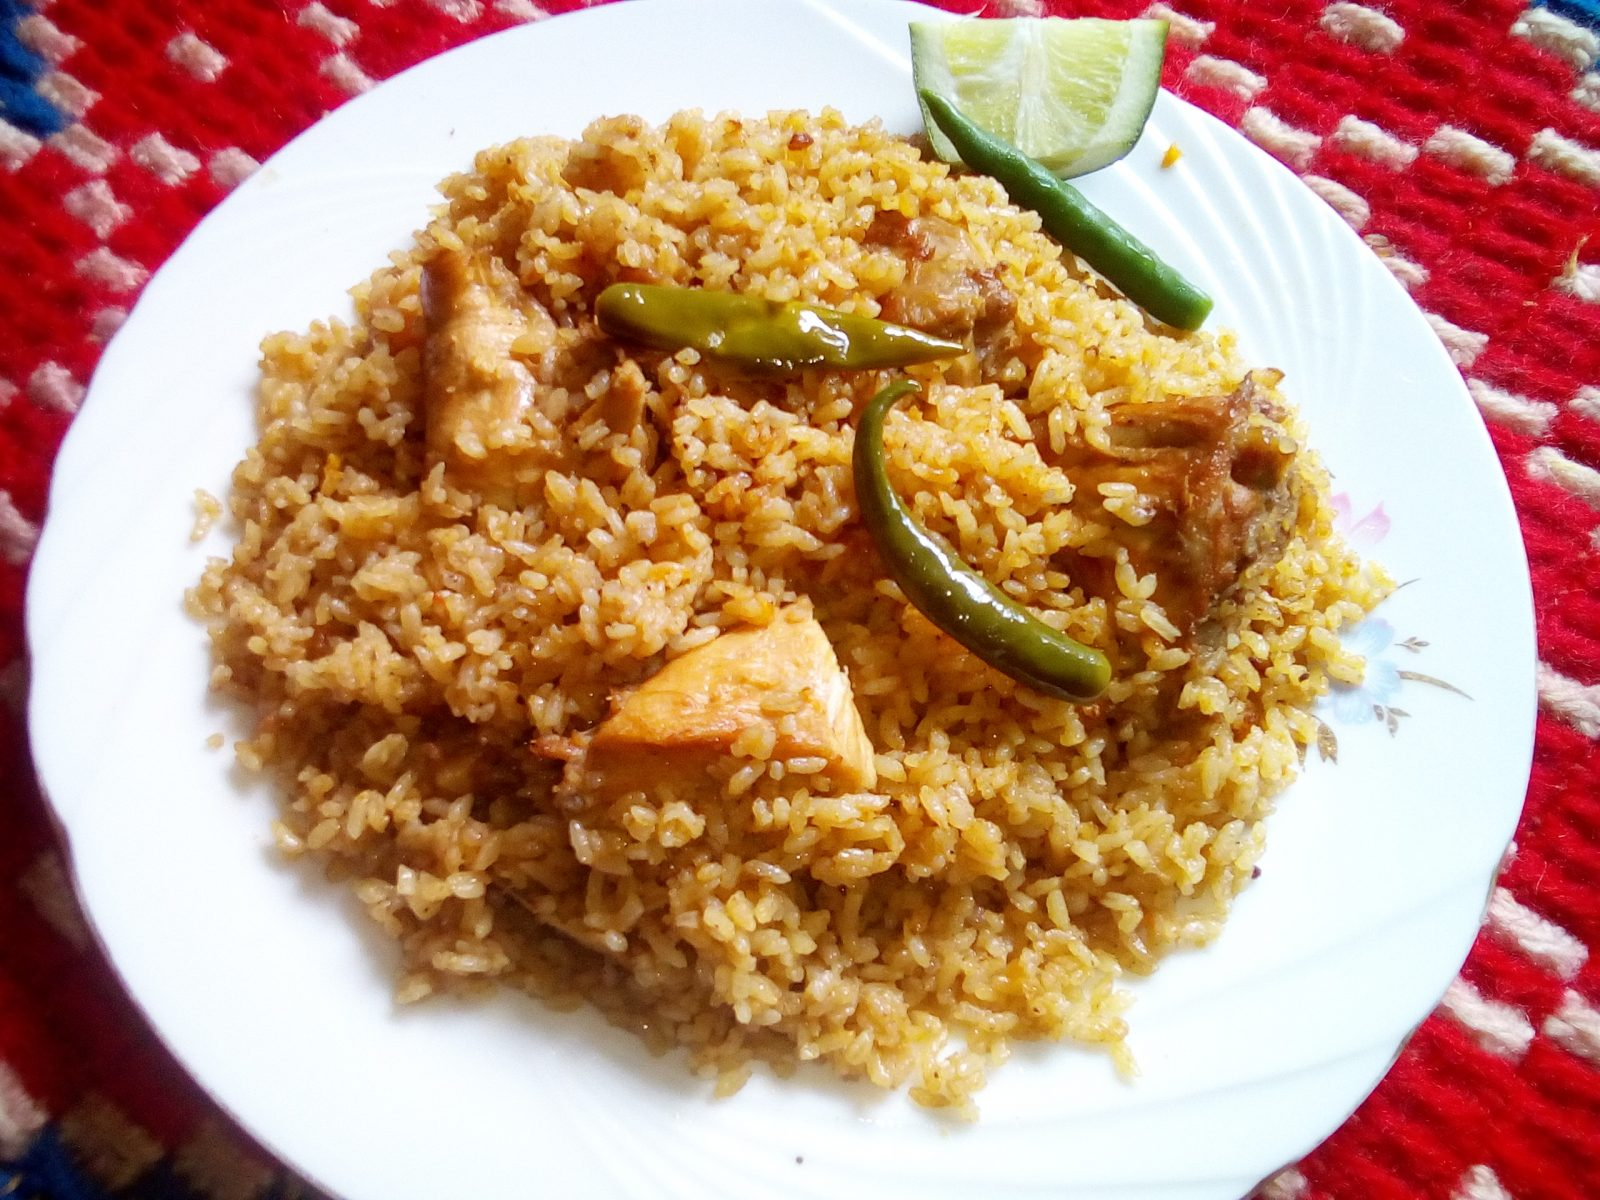 Chicken Tehari Regular from Sompurna Rannaghor